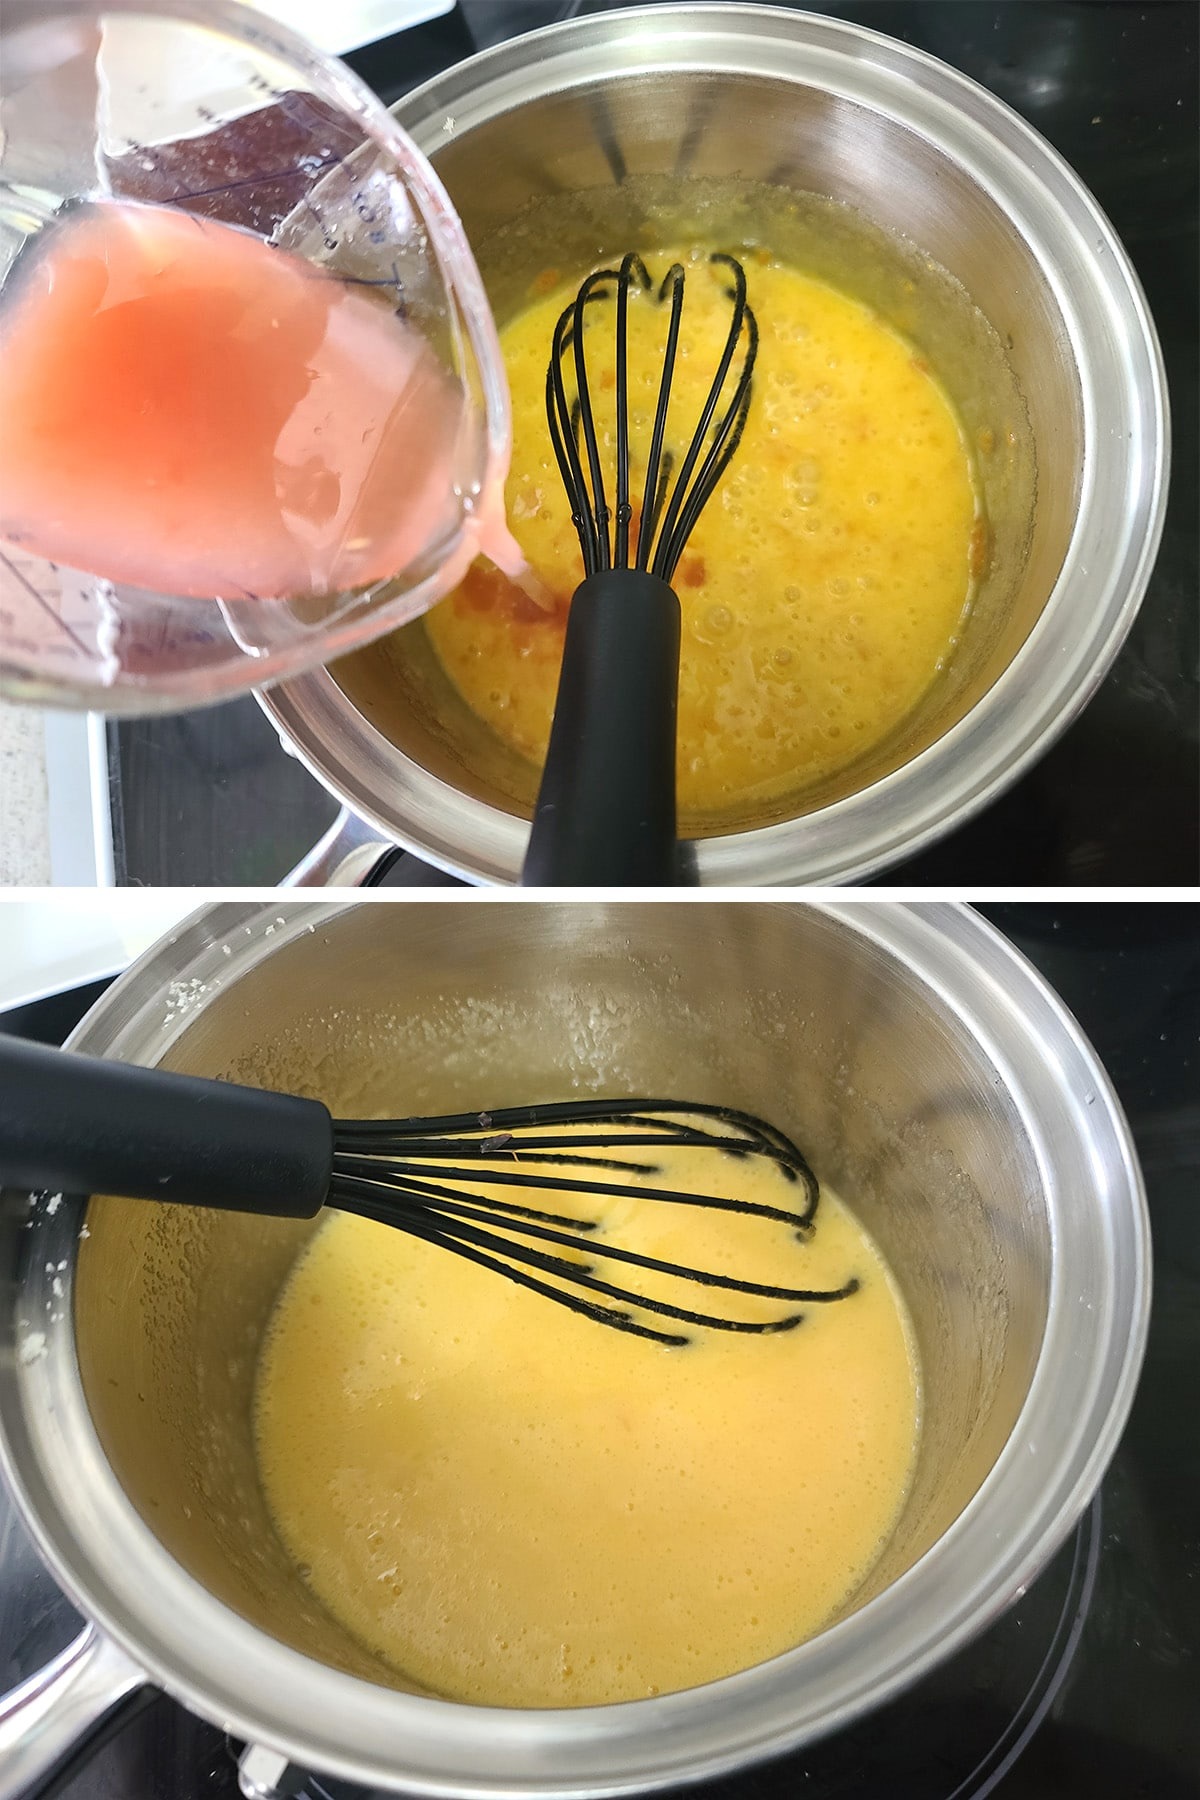 Grapefruit juice being added to the egg and sugar mixture.